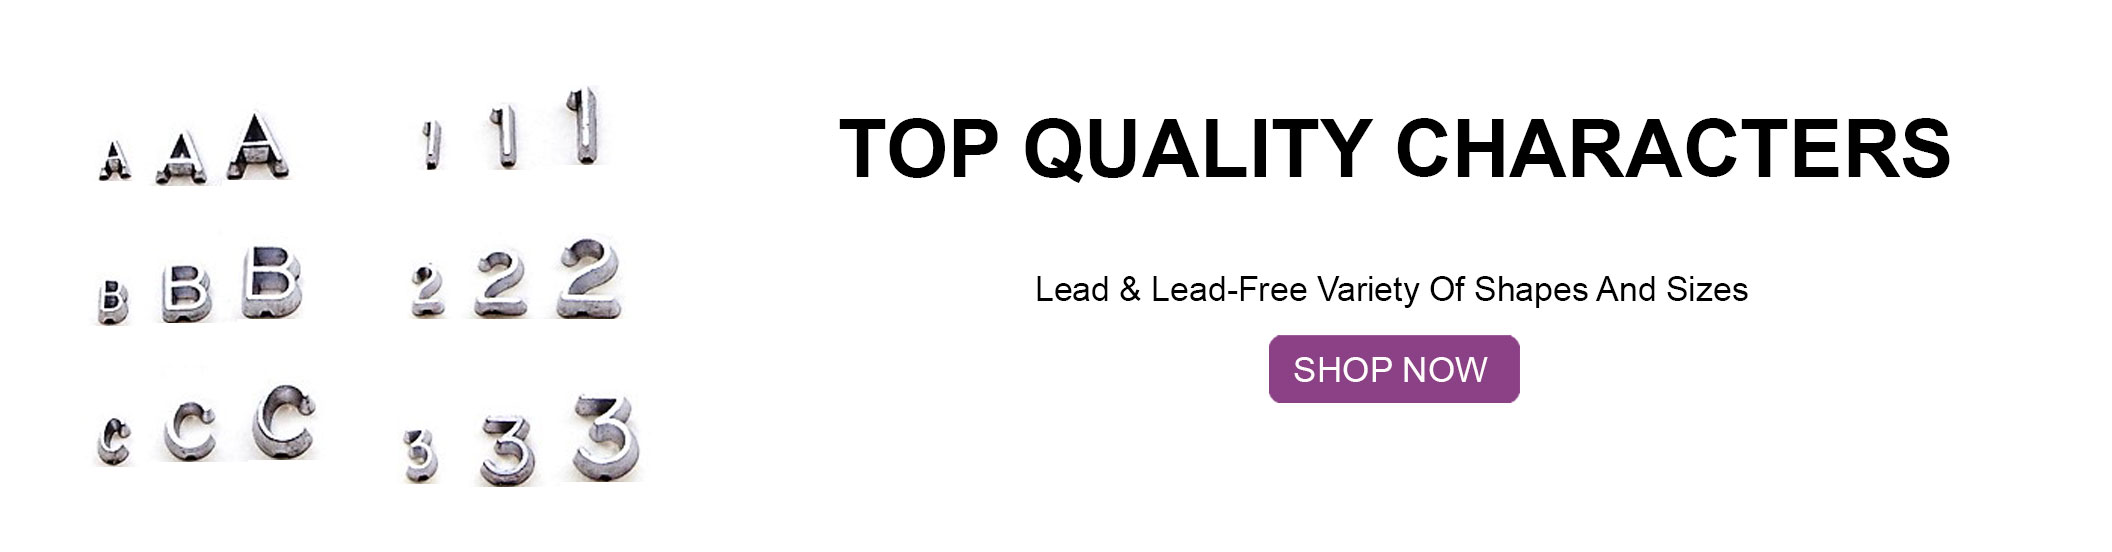 Lead & Lead Free Characters